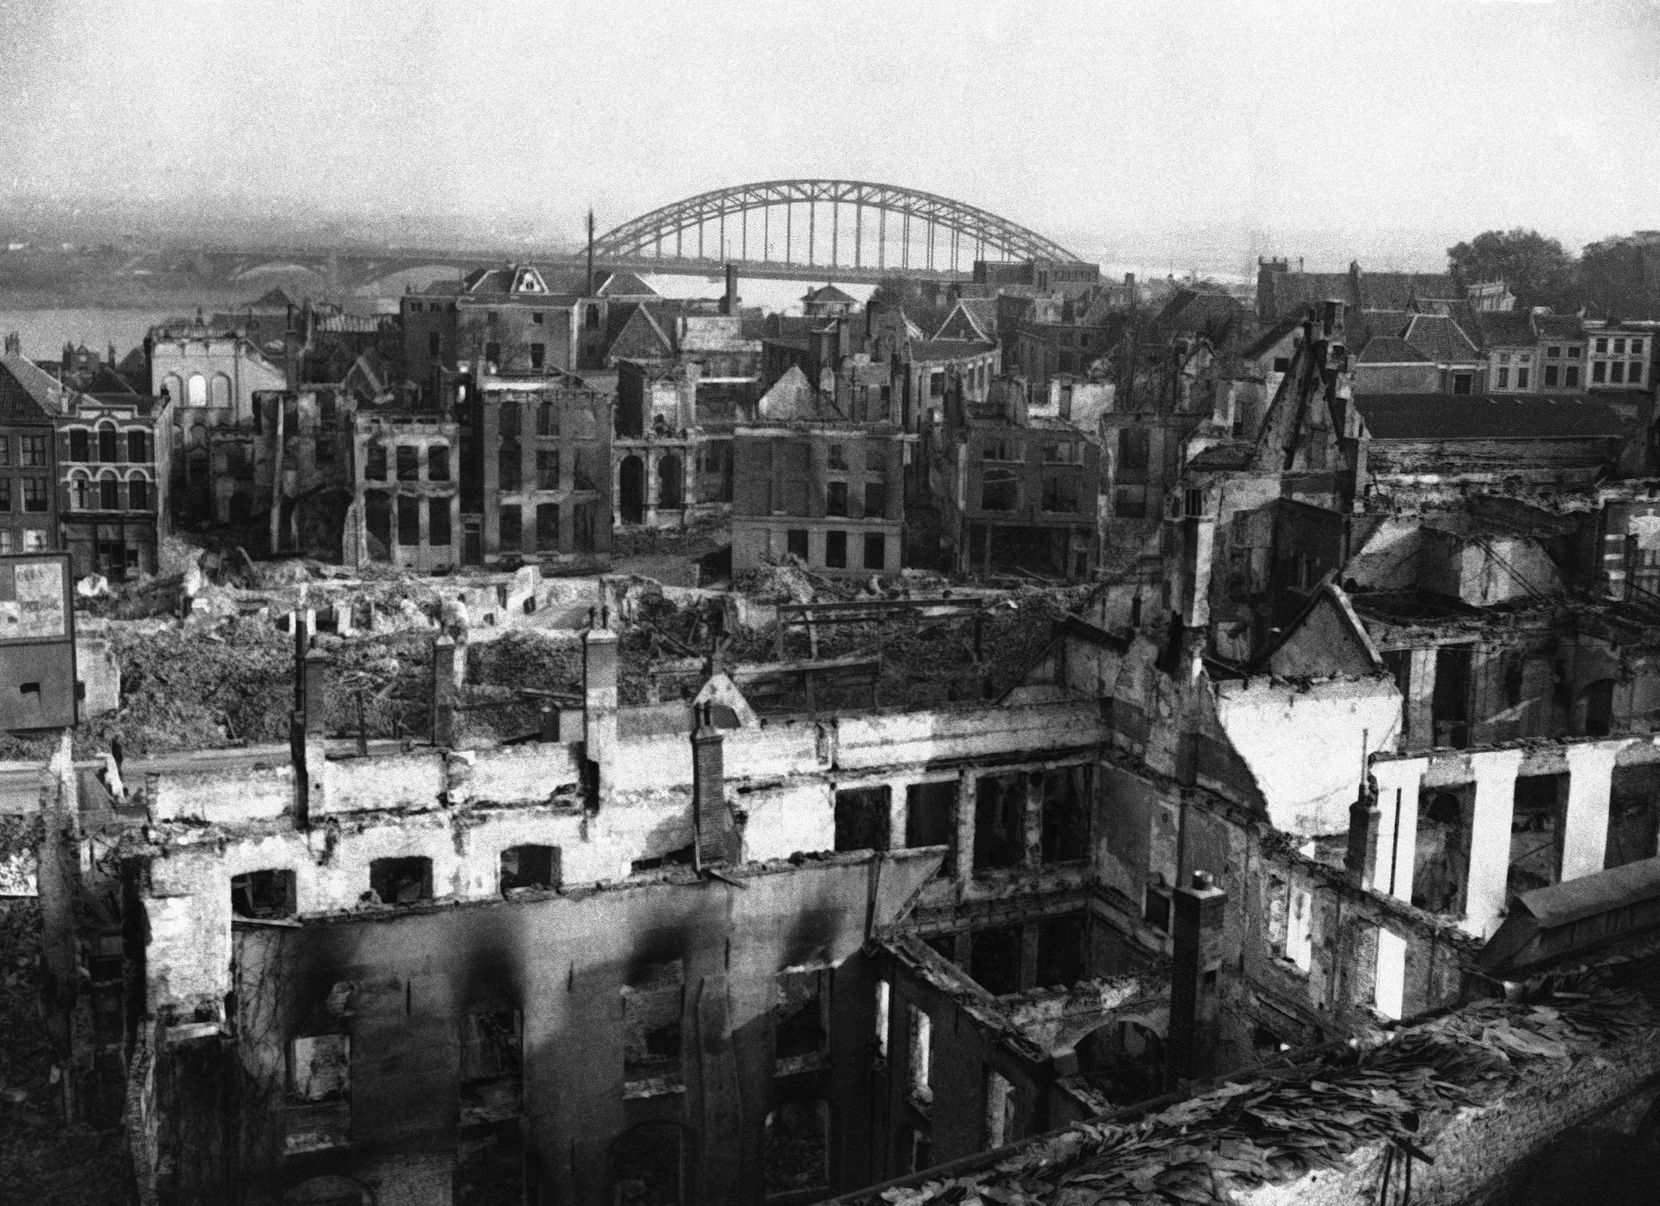 A view of bomb-wrecked and shell-shattered Nijmegen, Netherlands in February, 1945, with the famous bridge over the river Waal in the background. Only the shells of some houses are left in the town, which has seen some of the most fierce fighting of the war. Most of the buildings were razed to the ground.